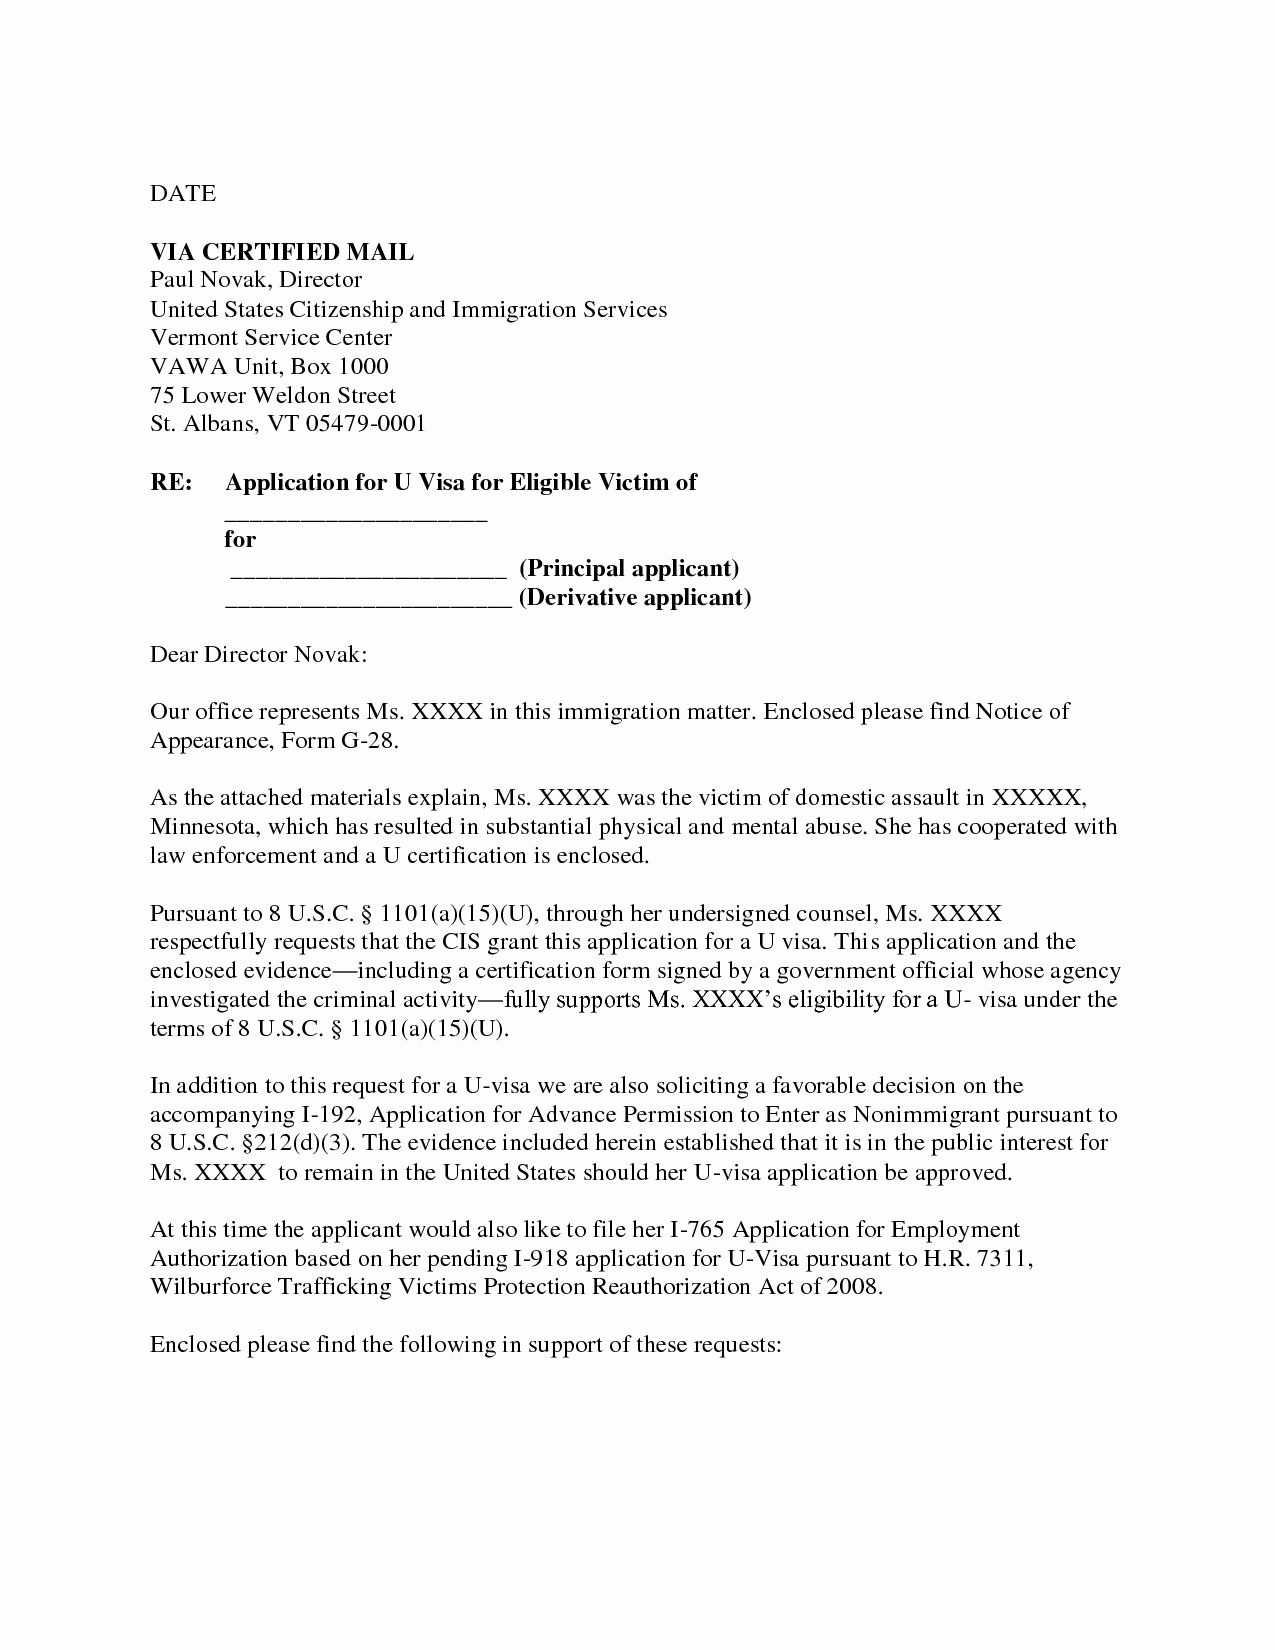 U Visa Personal Statement Sample Unique Letter Example Waiver For Immigration Of Recommendation